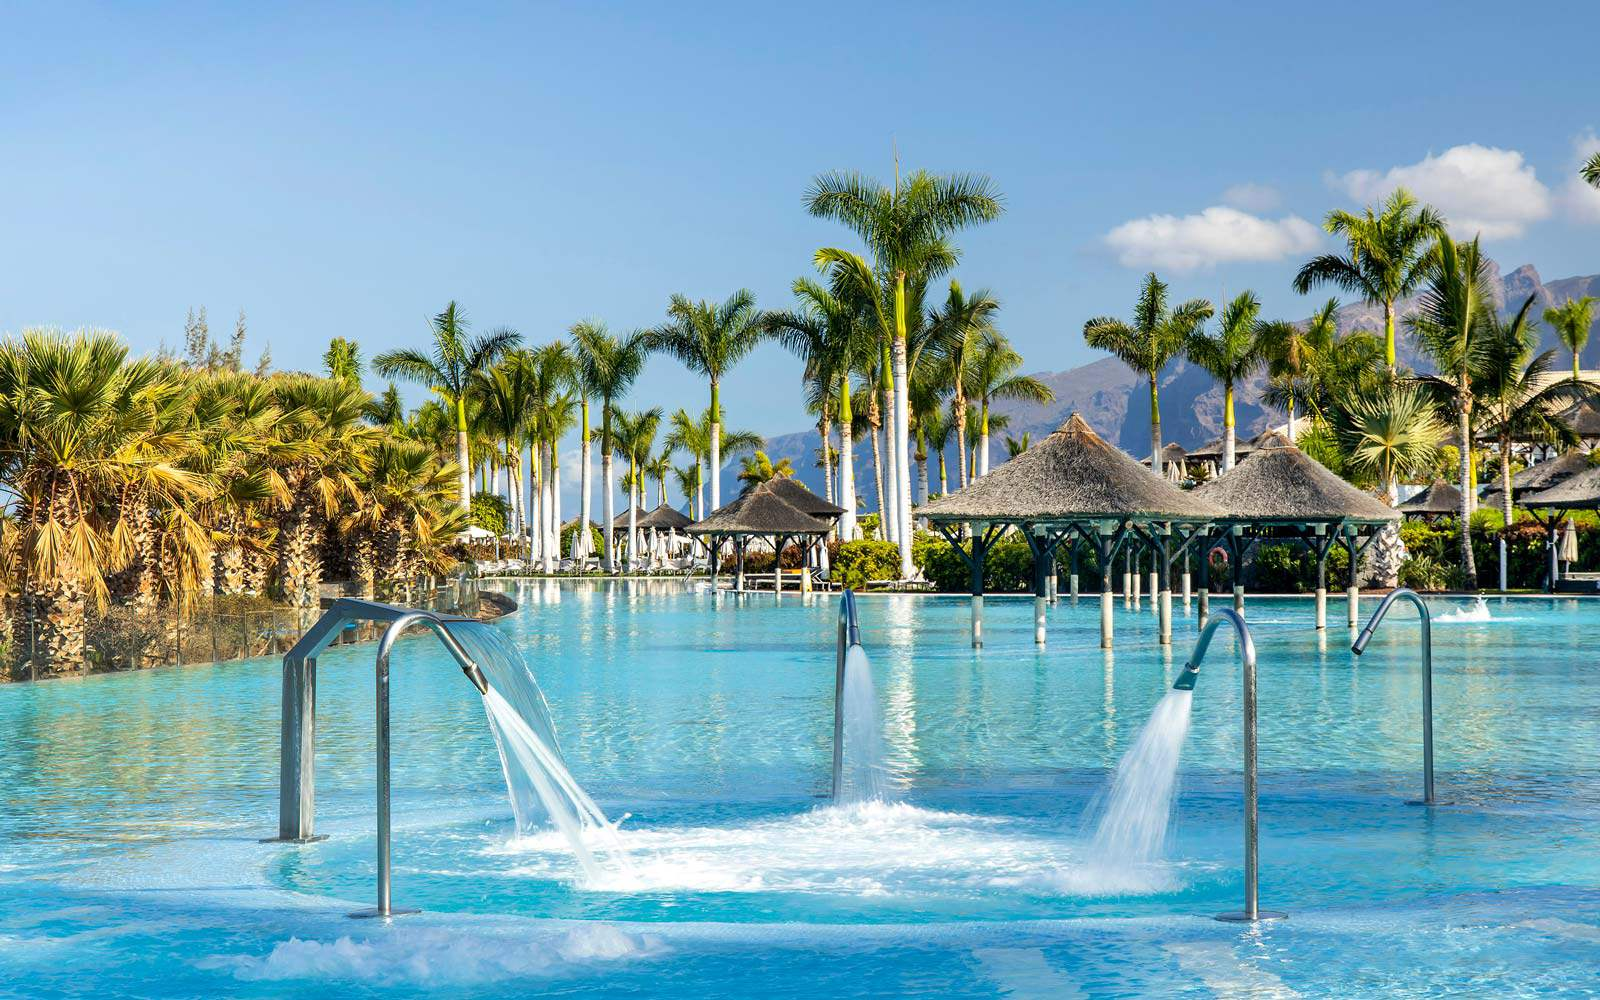 Gran Melia Palacio De Isora - swimming pool